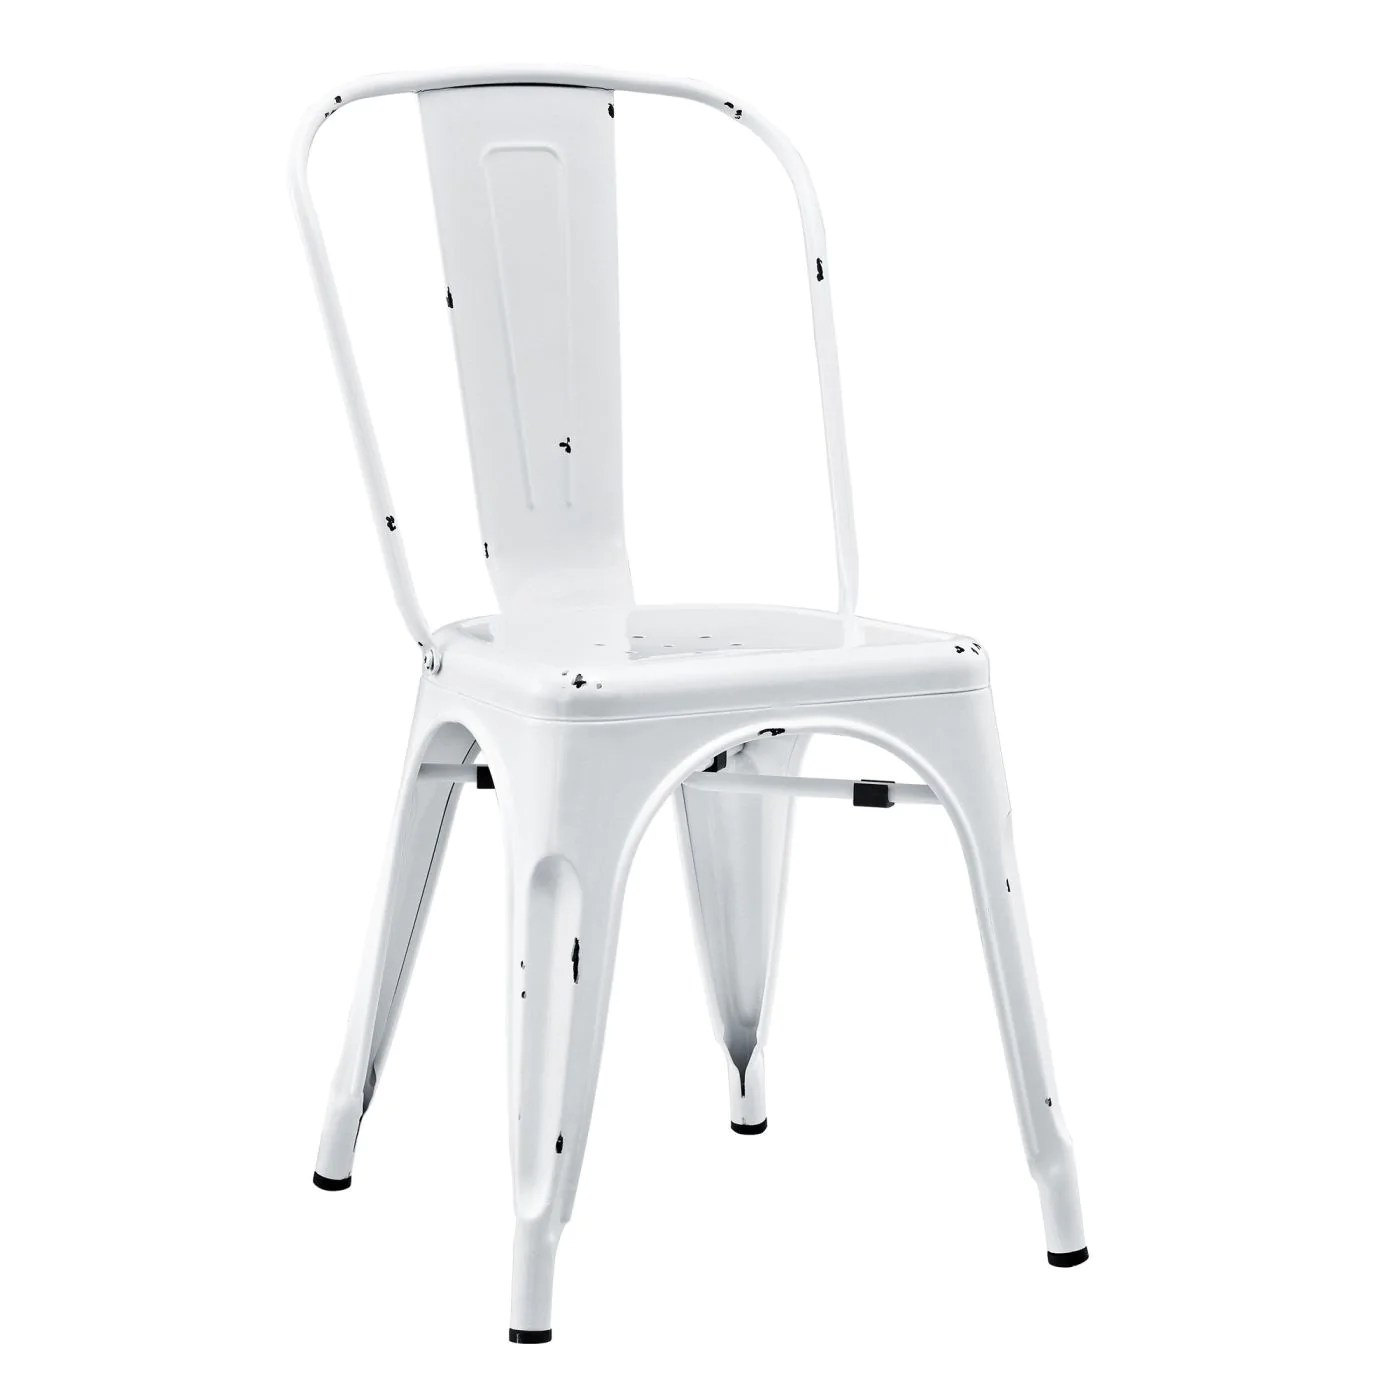 cafe chairs metal ijoy massage chair sale walker edison antique white at contemporary dining